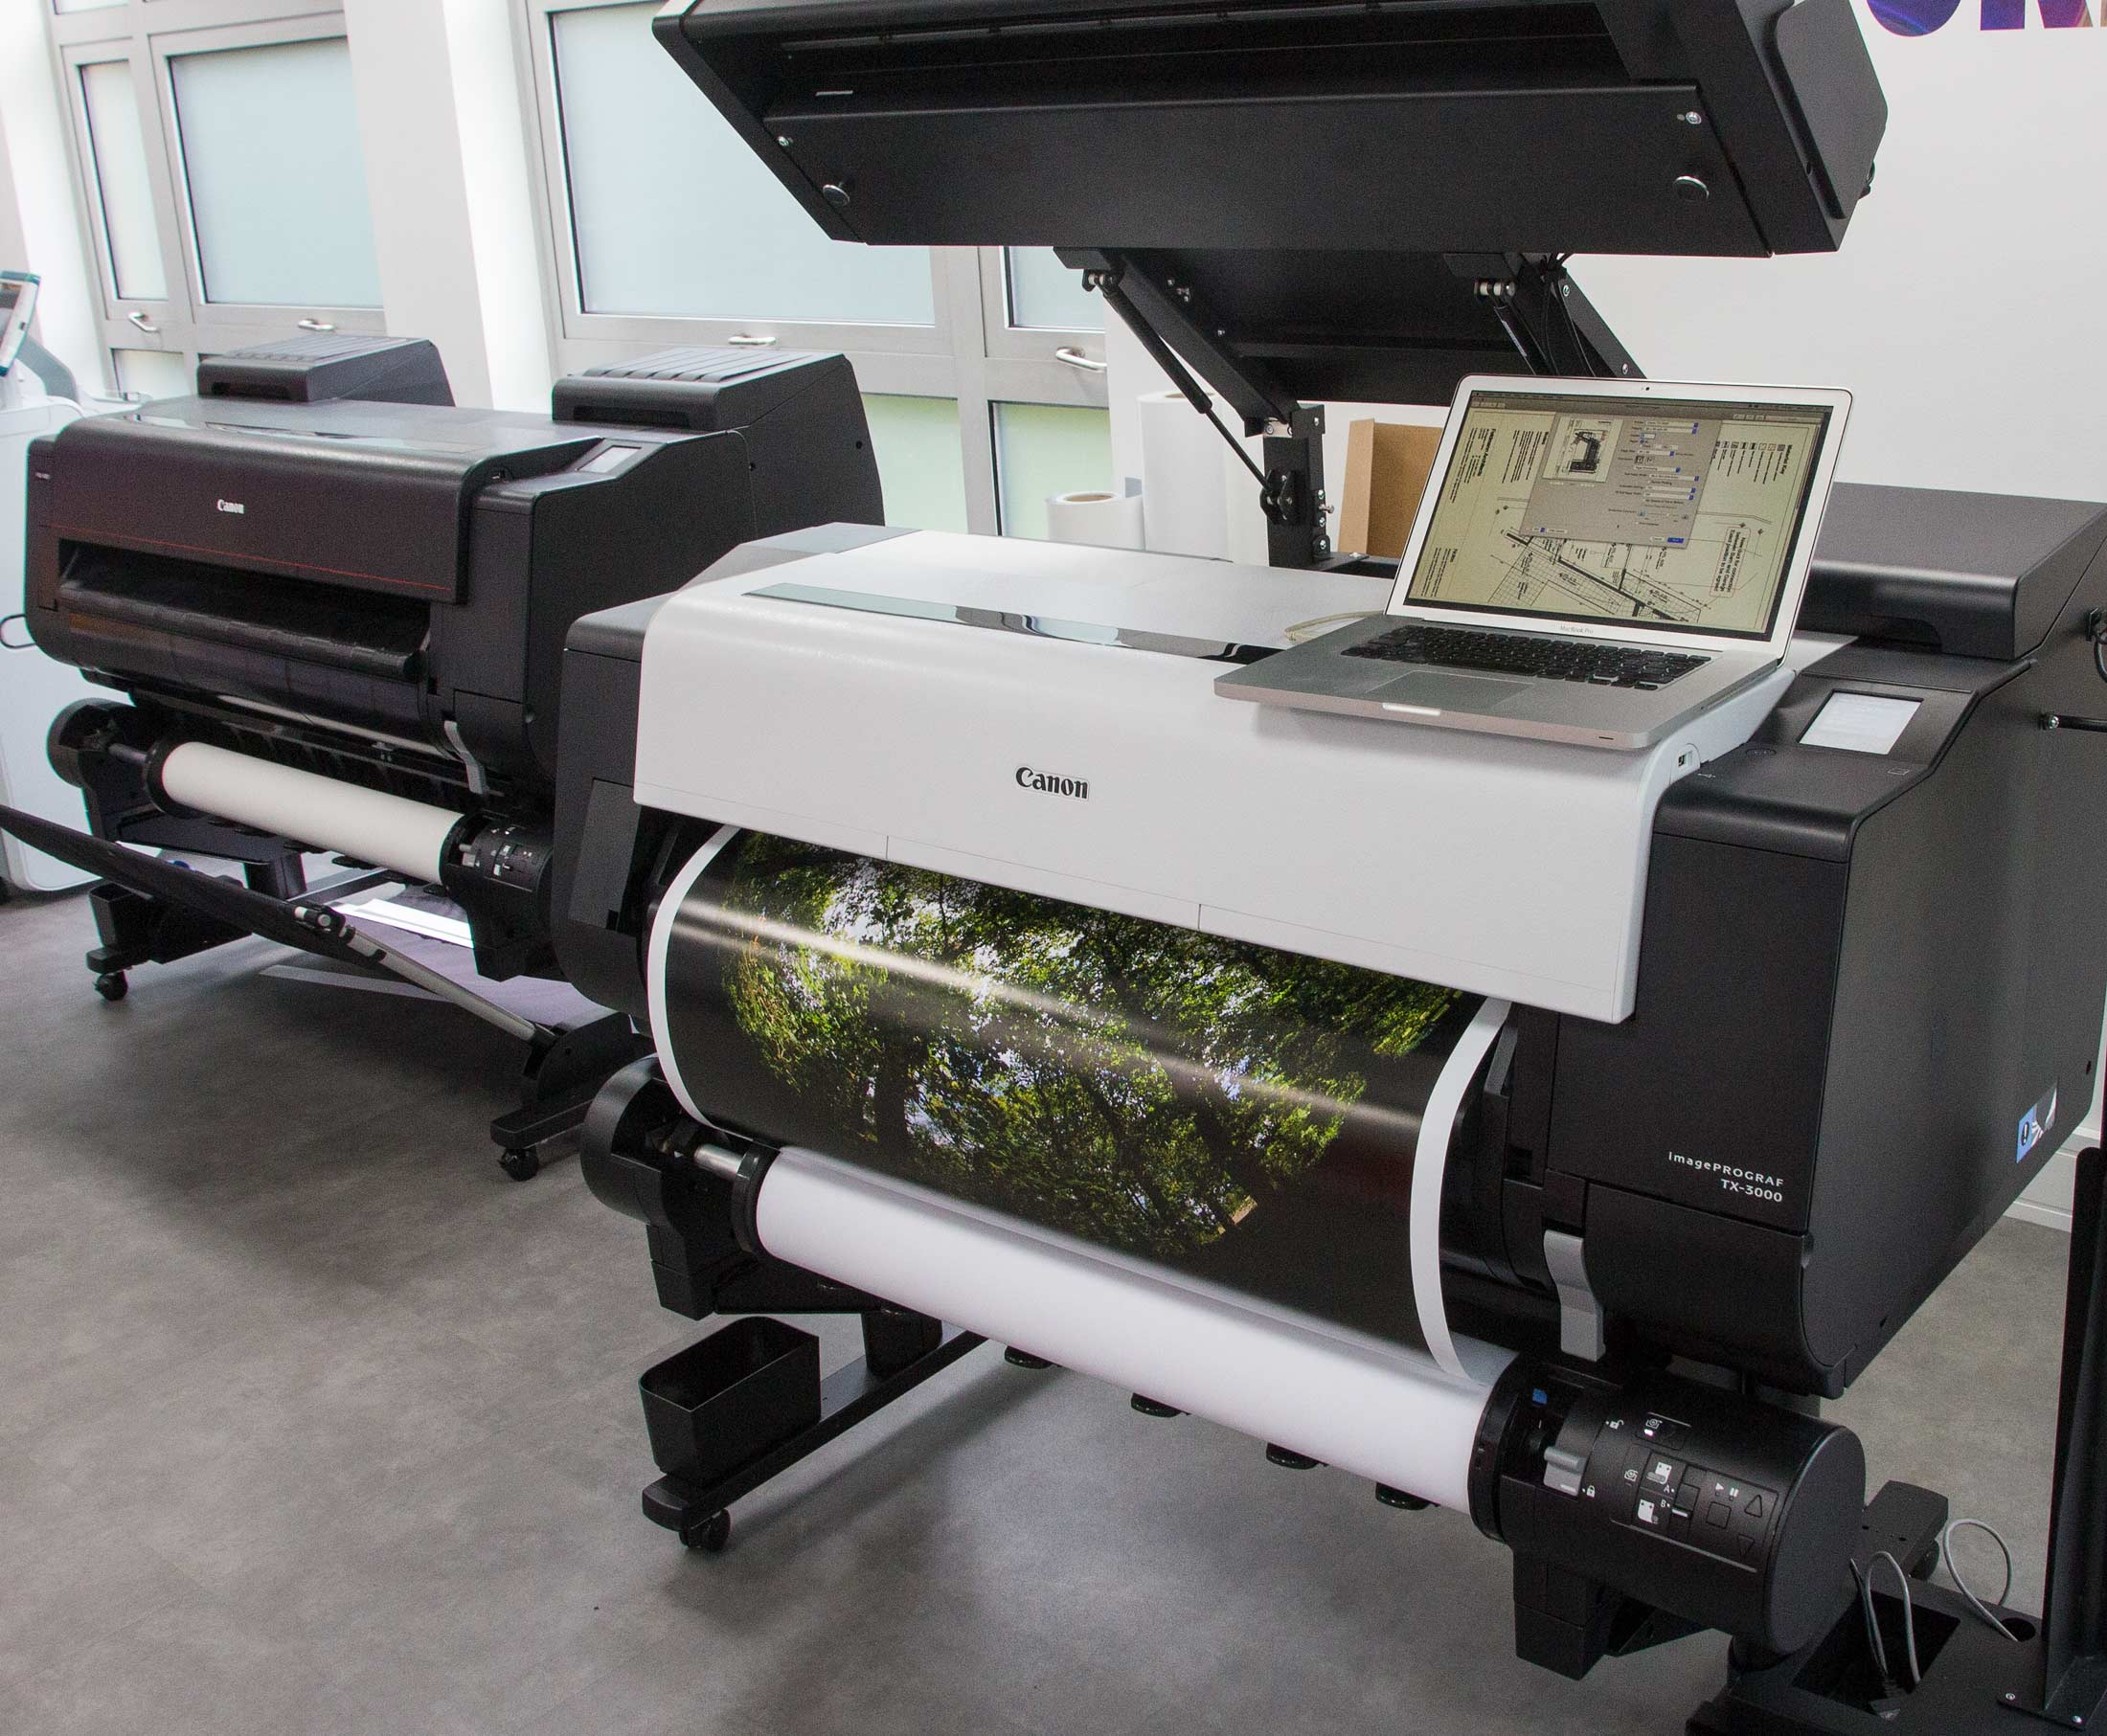 Latest Canon printer news, updates and rumours